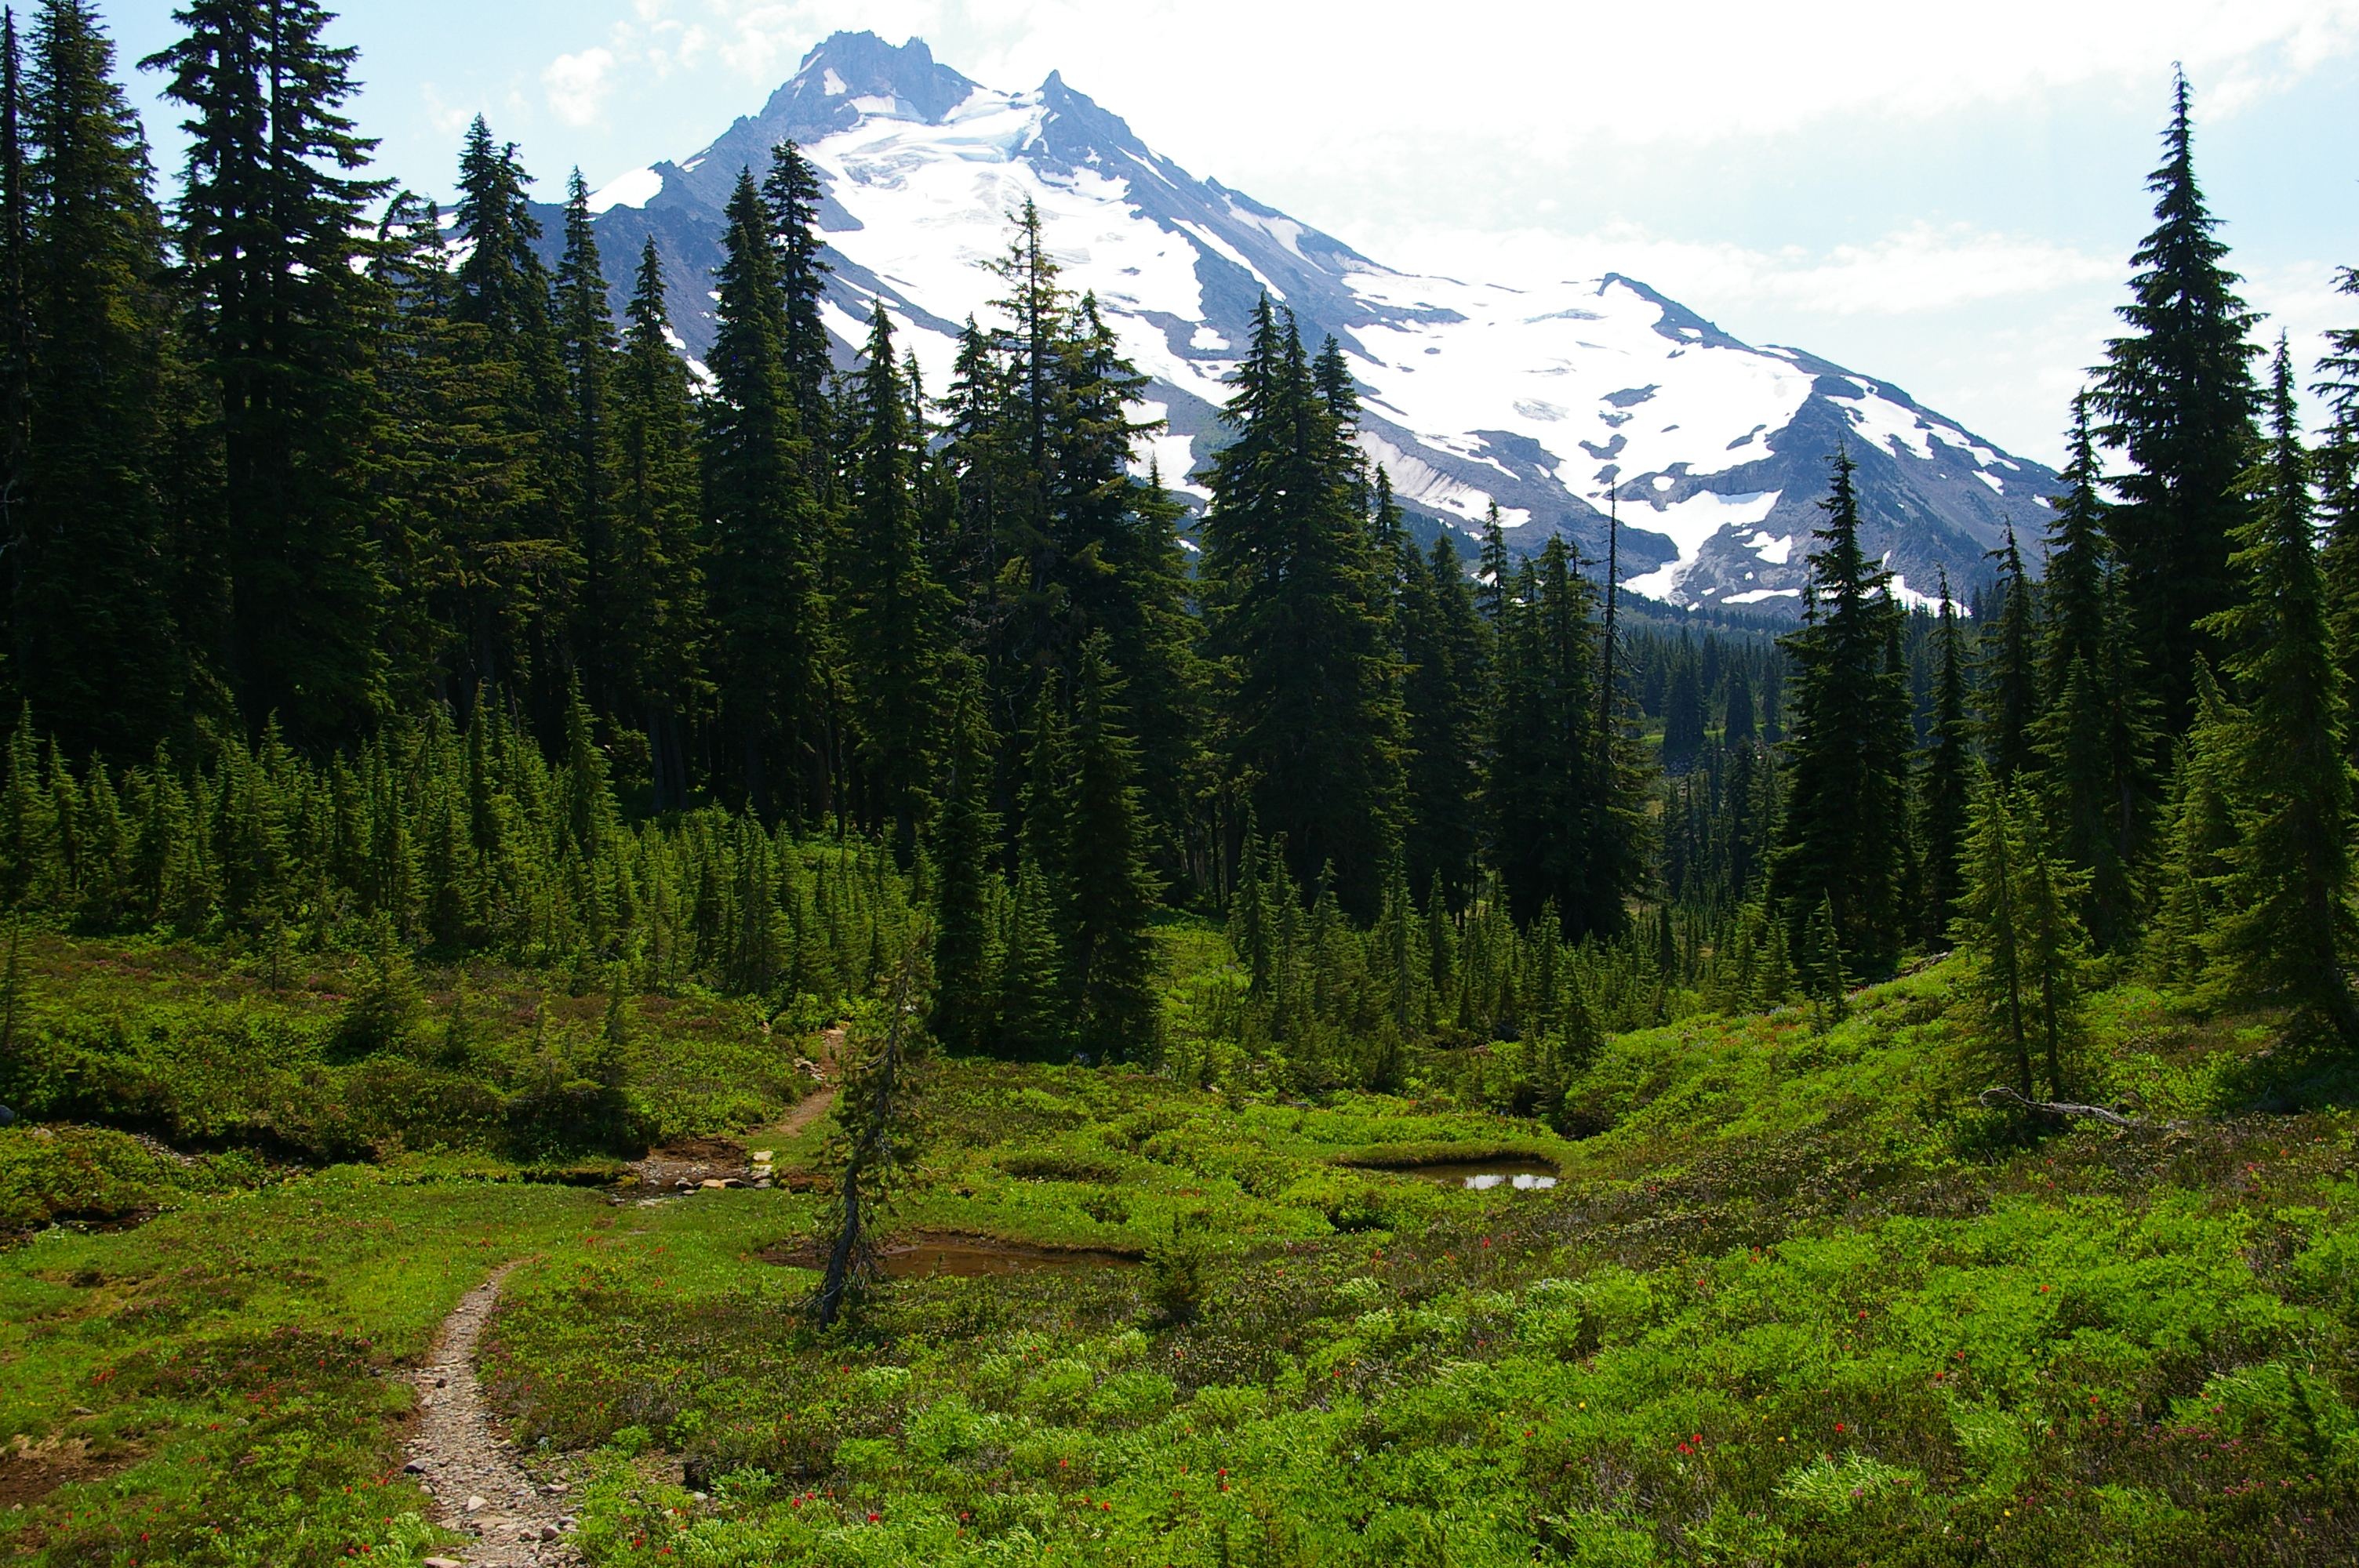 Mount Jefferson Wilderness 7